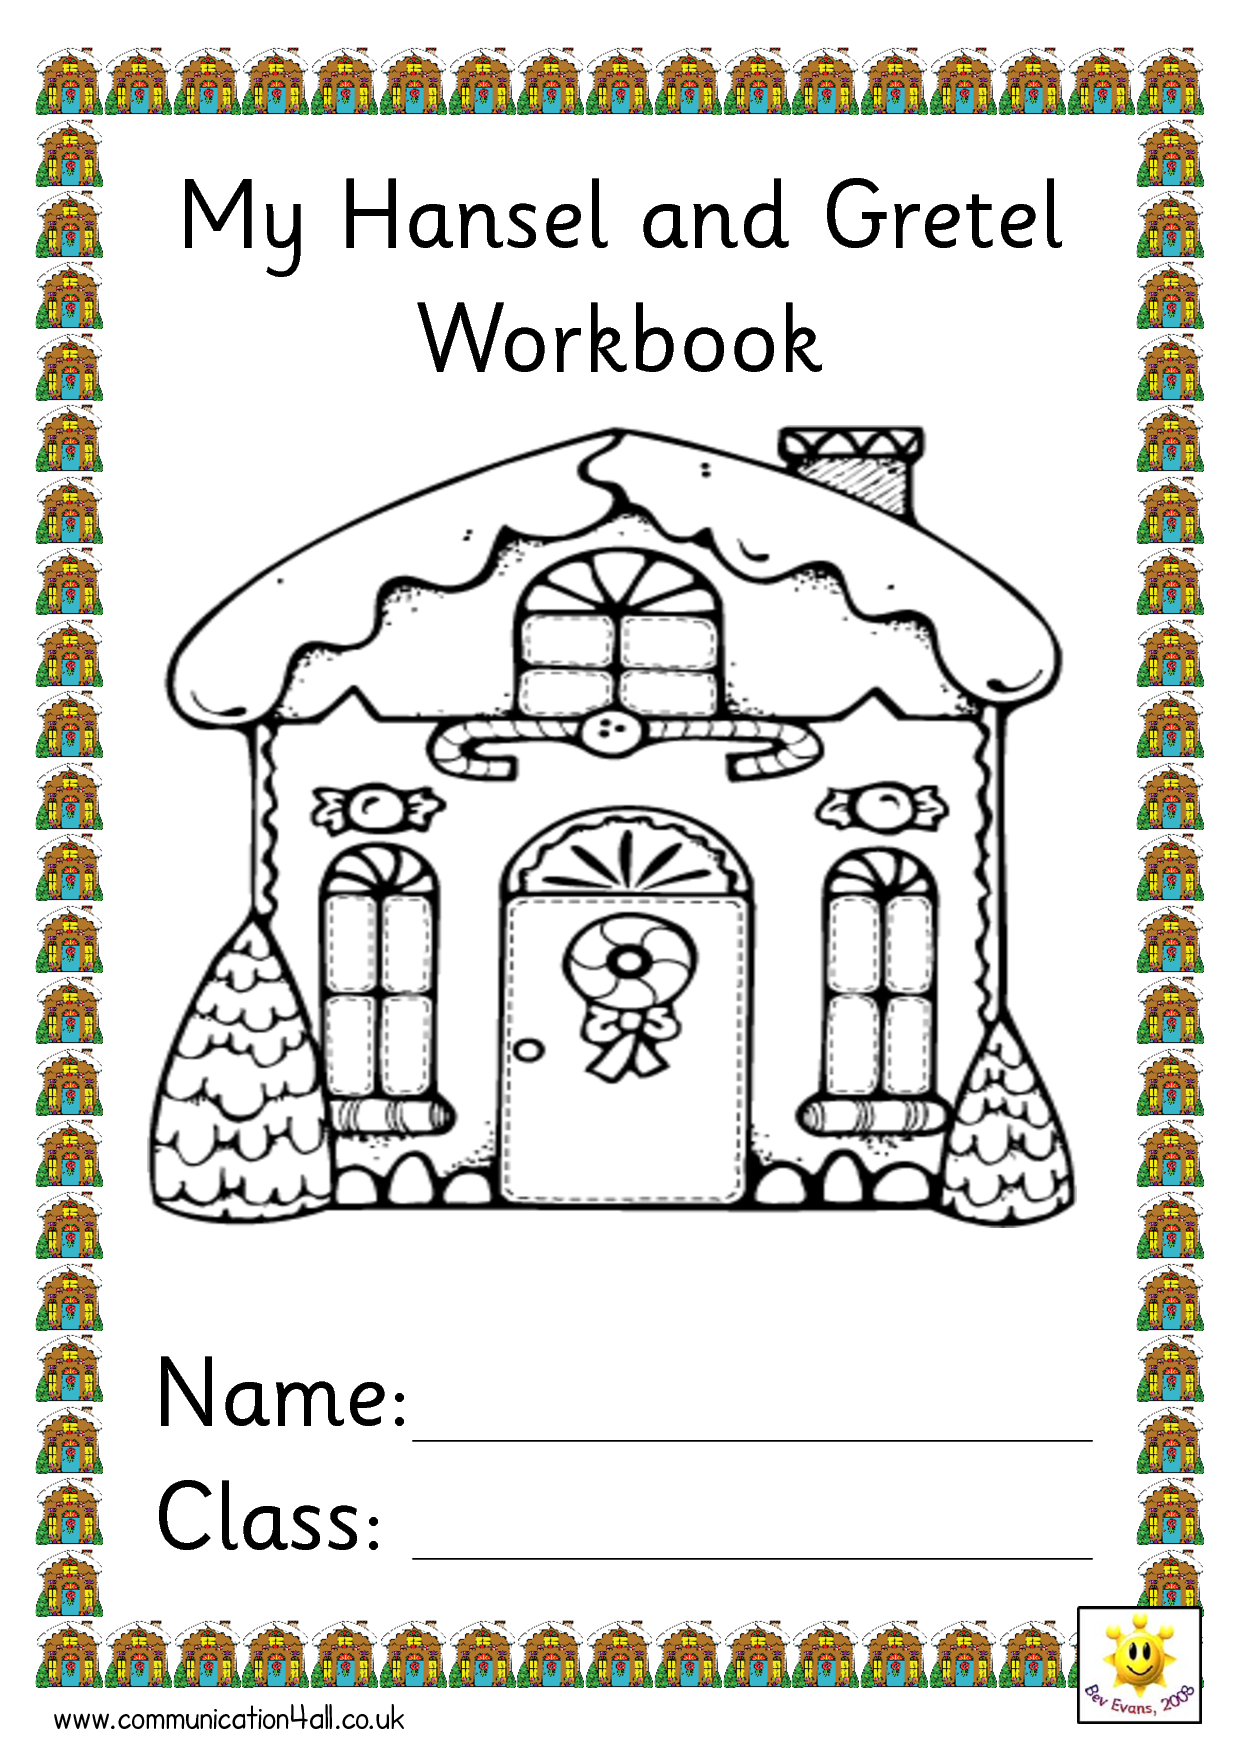 Kids Can Color The Page For The Hansel And Gretel Tree | Children's | Hansel And Gretel Printable Worksheets